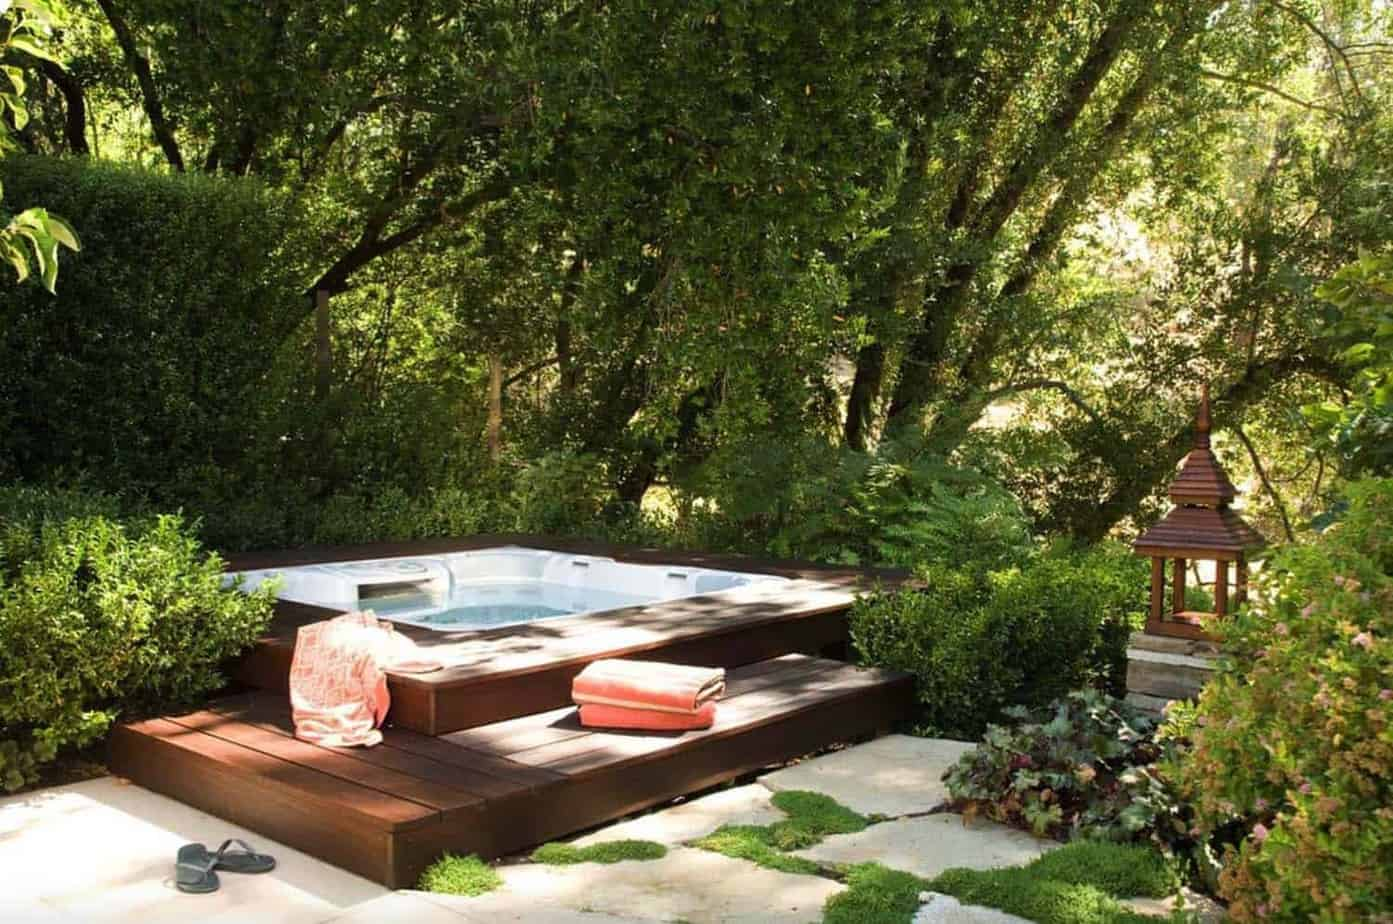 Hot tub deck combined with a landscape, adding natural privacy barrier